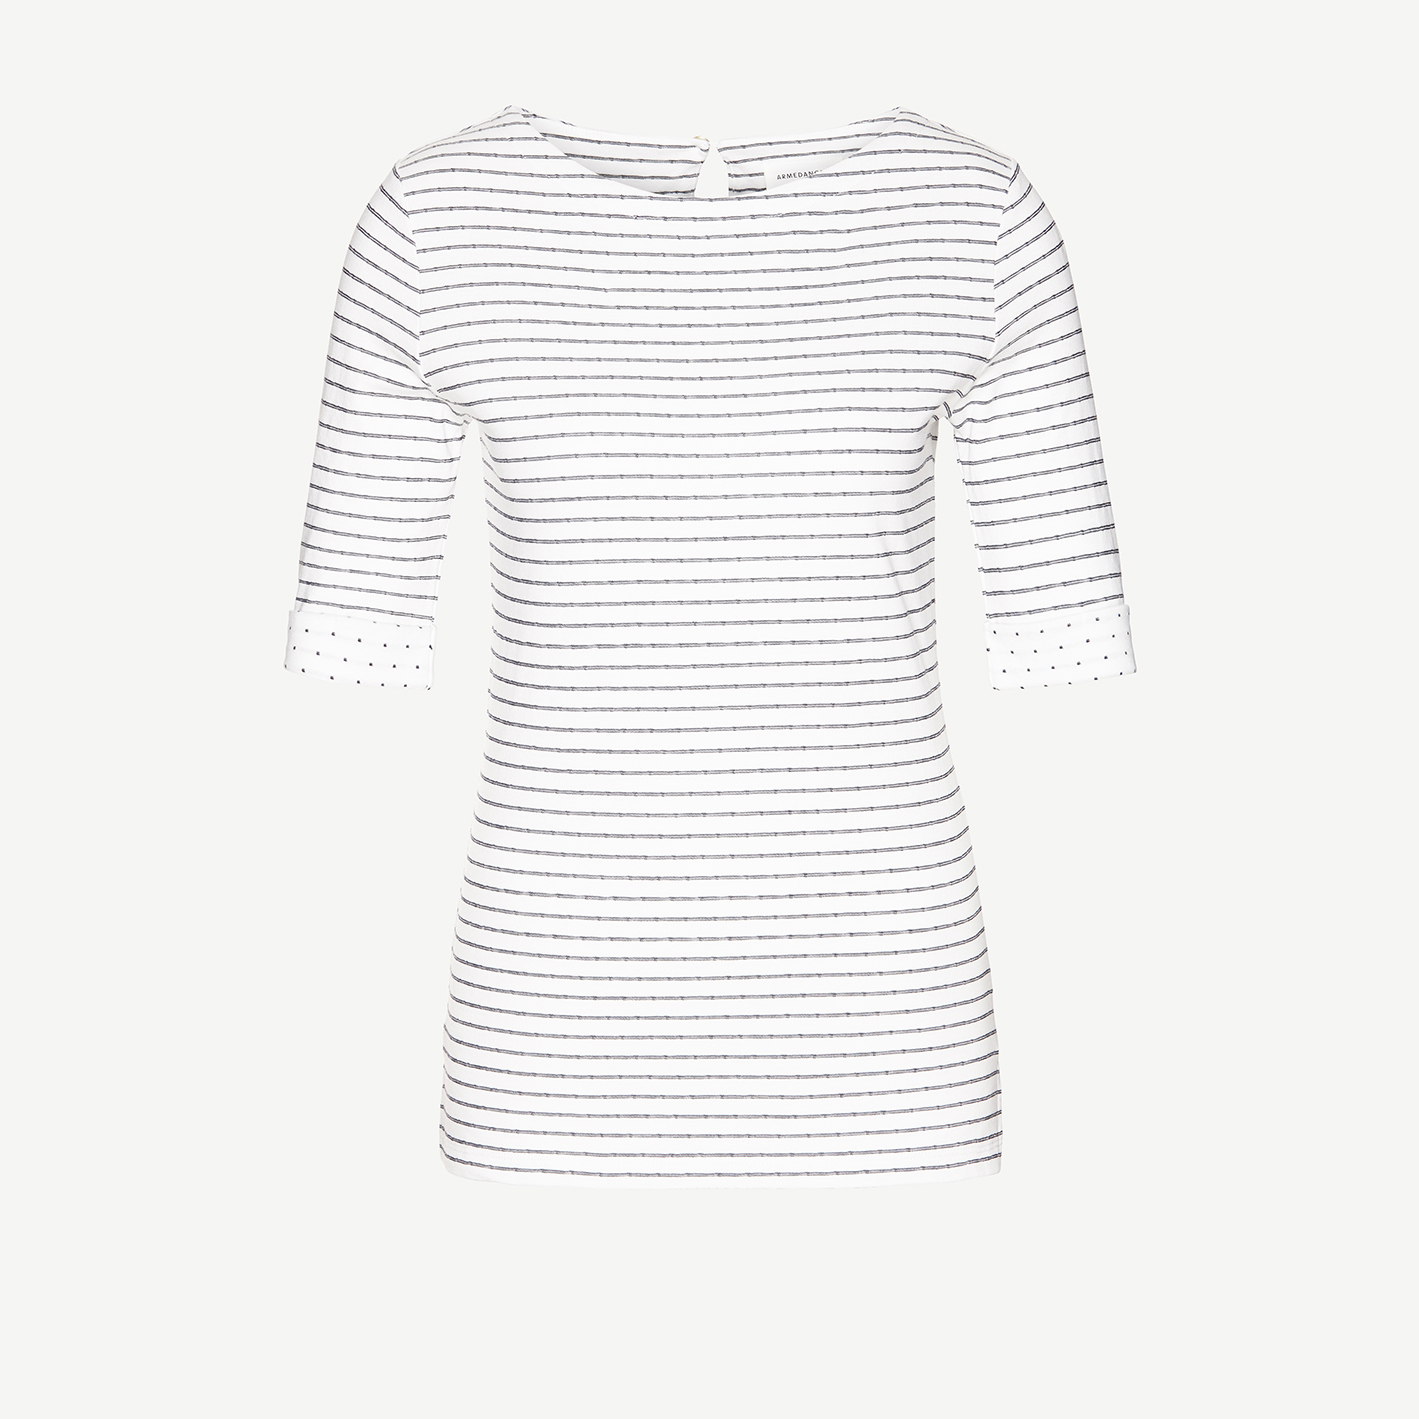 Calle Top – navy and white striped top